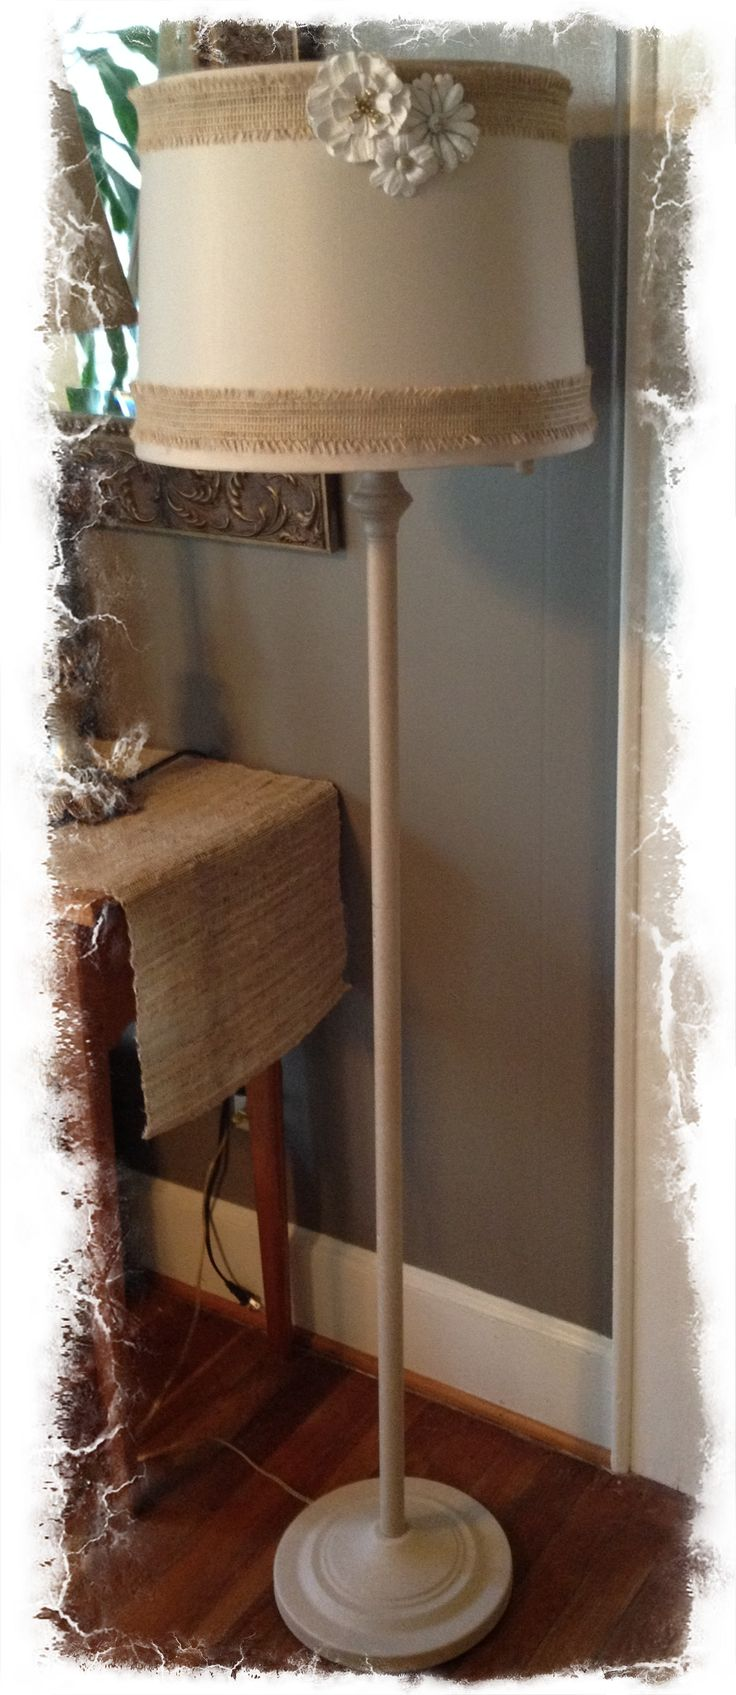 Sold Plain floor lamp sprayed w/textured paint.  Lamp shade embellished with jute ribbon and flower decals.